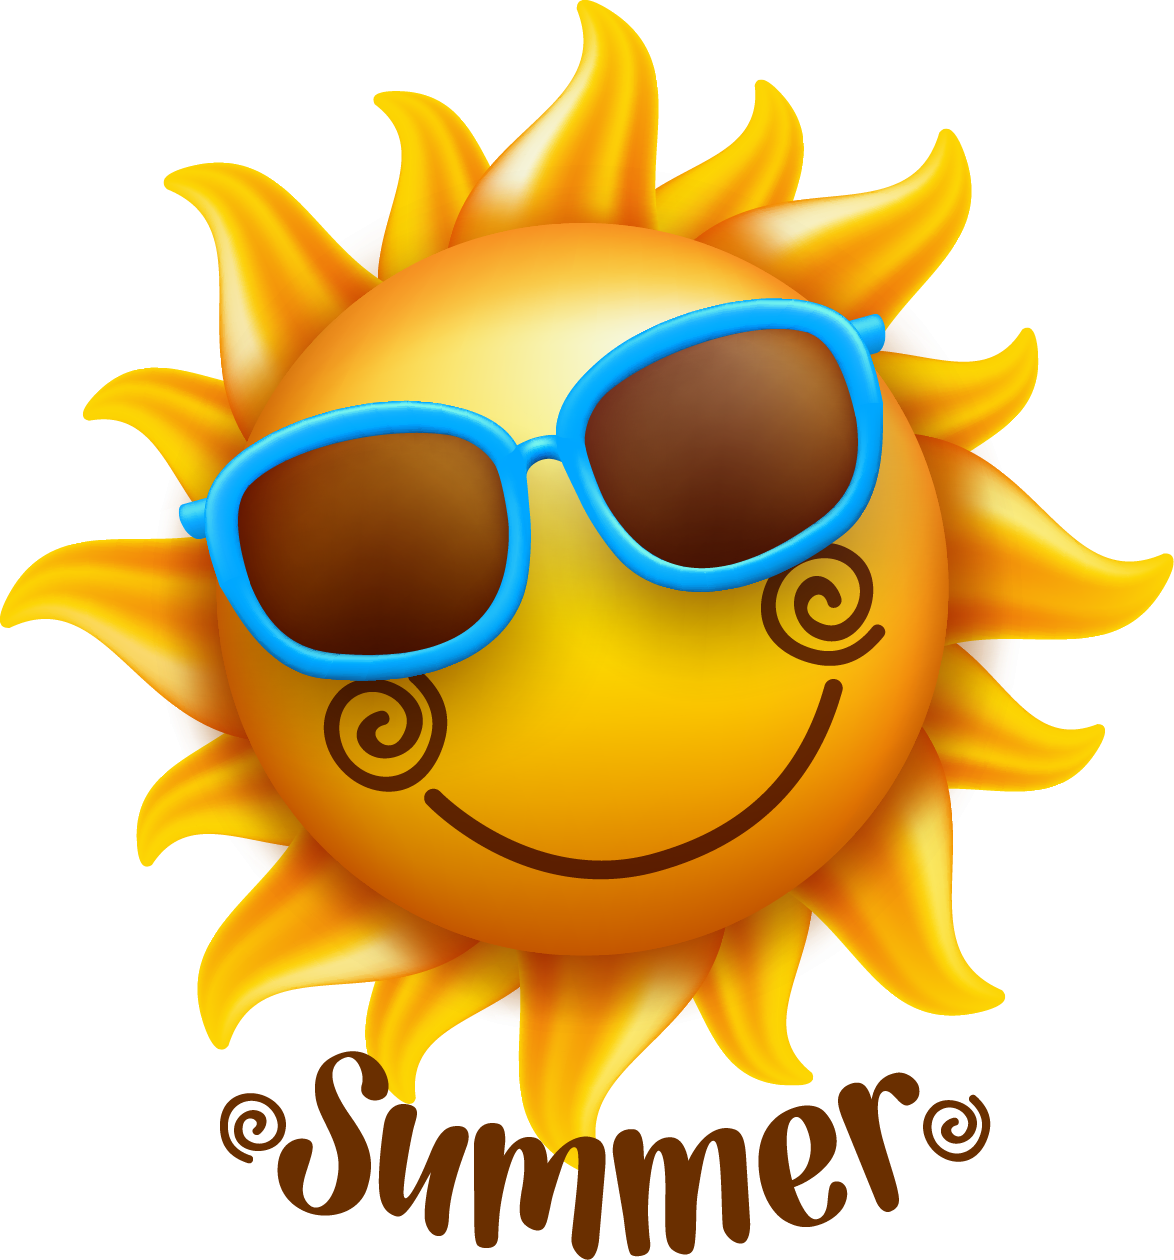 Illustration summer sun transprent. Smiley face clip art flower